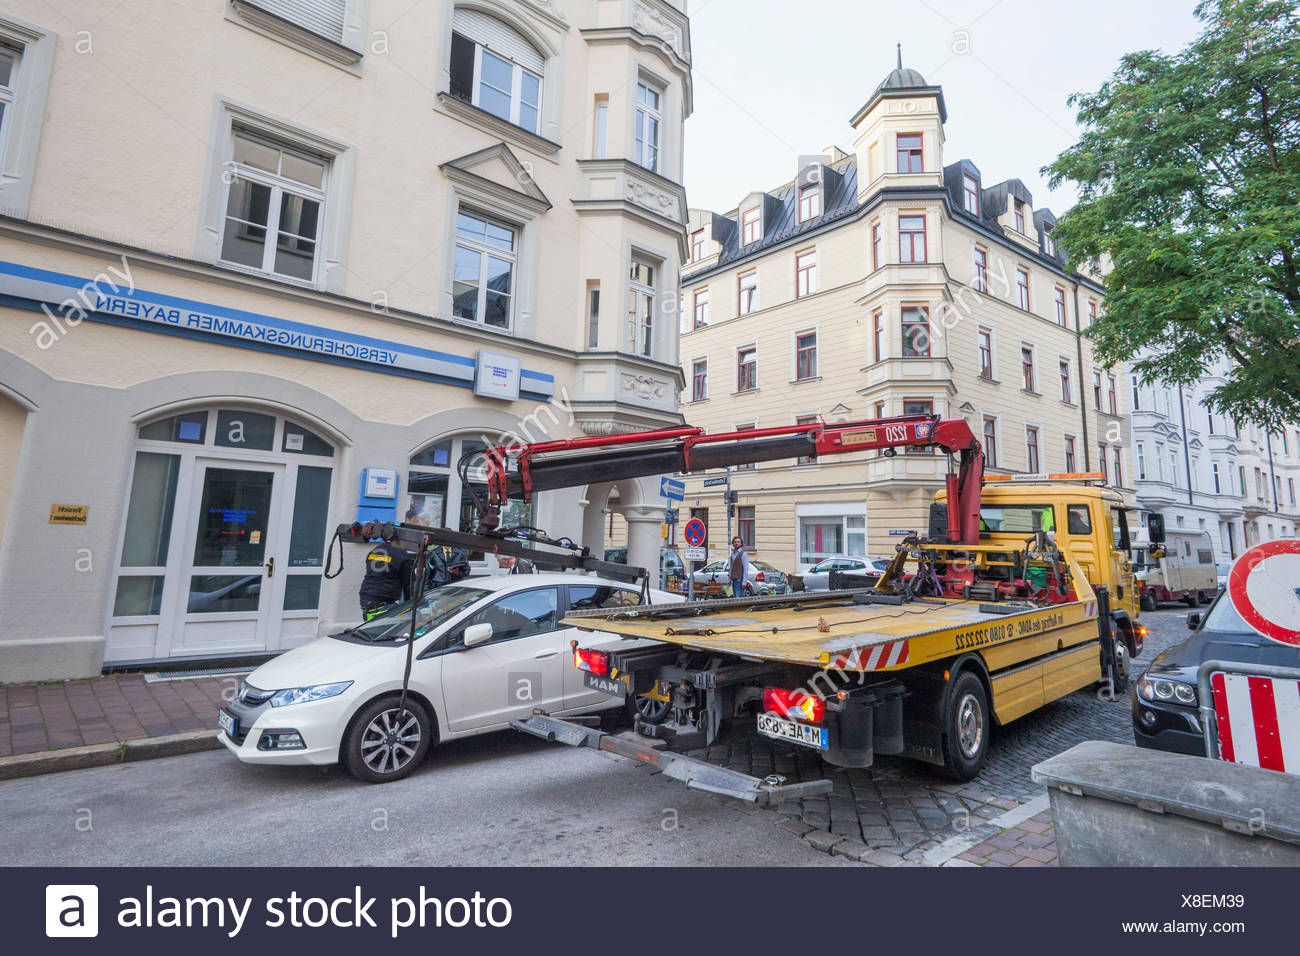 Germany, Bavaria, Munich, Illegally Parked Car being Removed - Stock Image